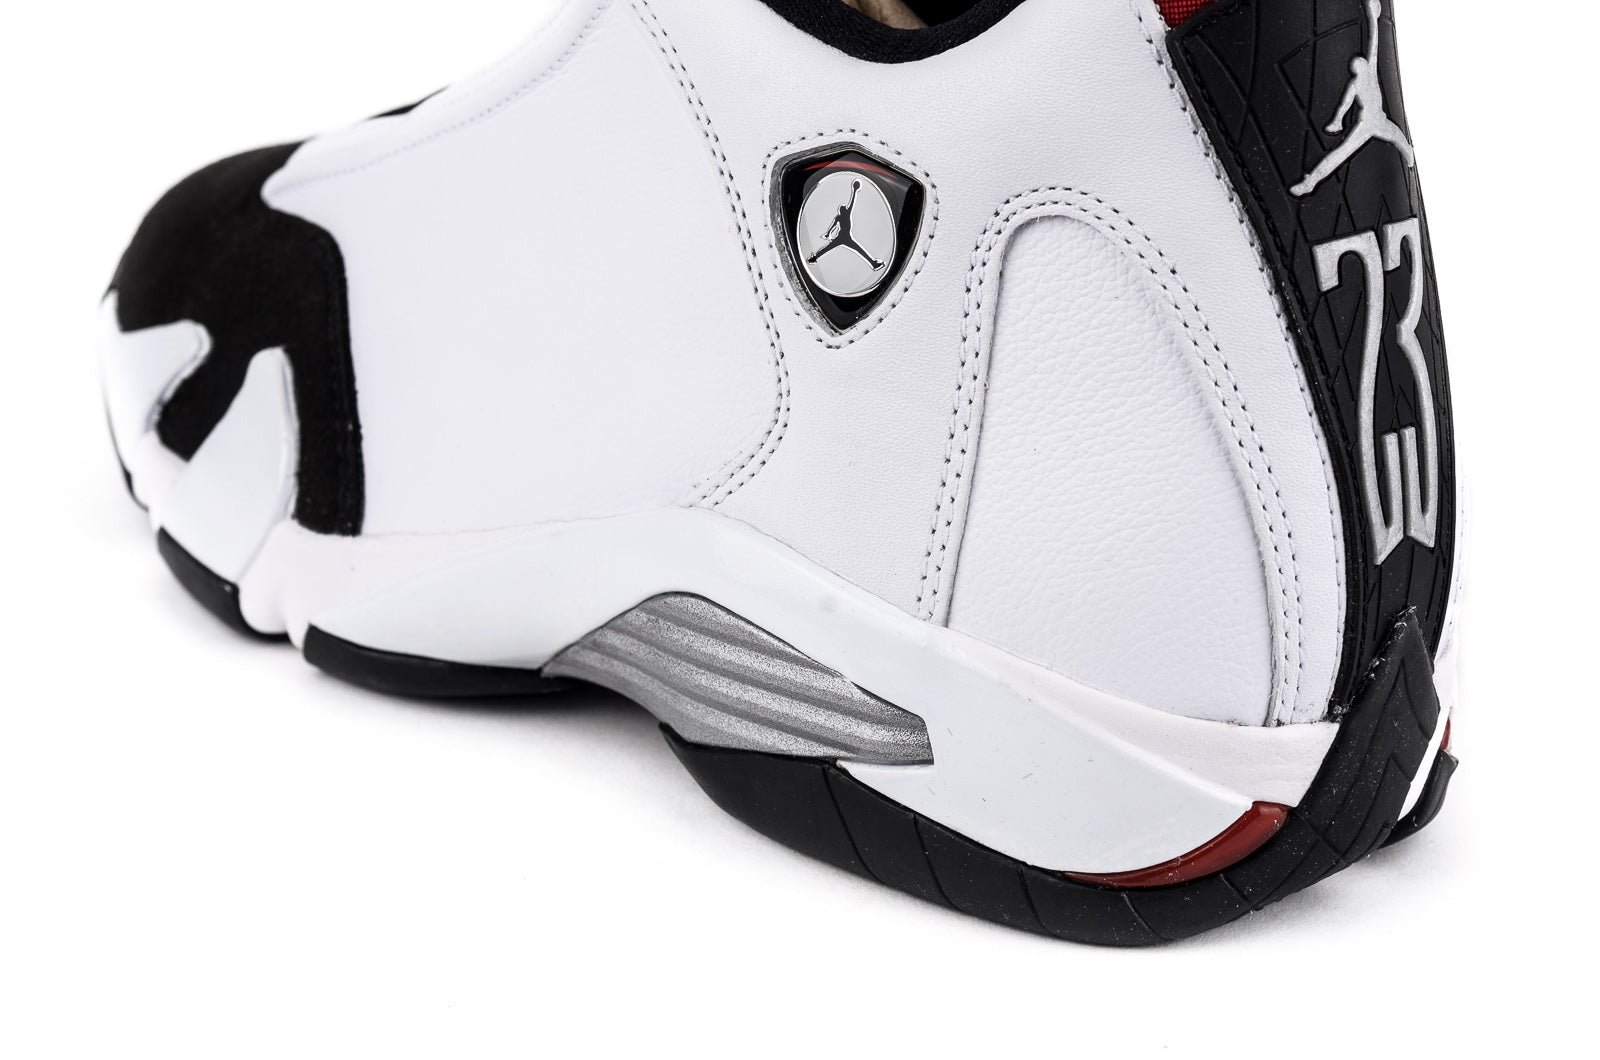 the best attitude fb3b1 17f87 Originally released in 1998, the Air Jordan 14 takes inspiration from a love  of sports cars and is personified through its sleek lines and premium ...